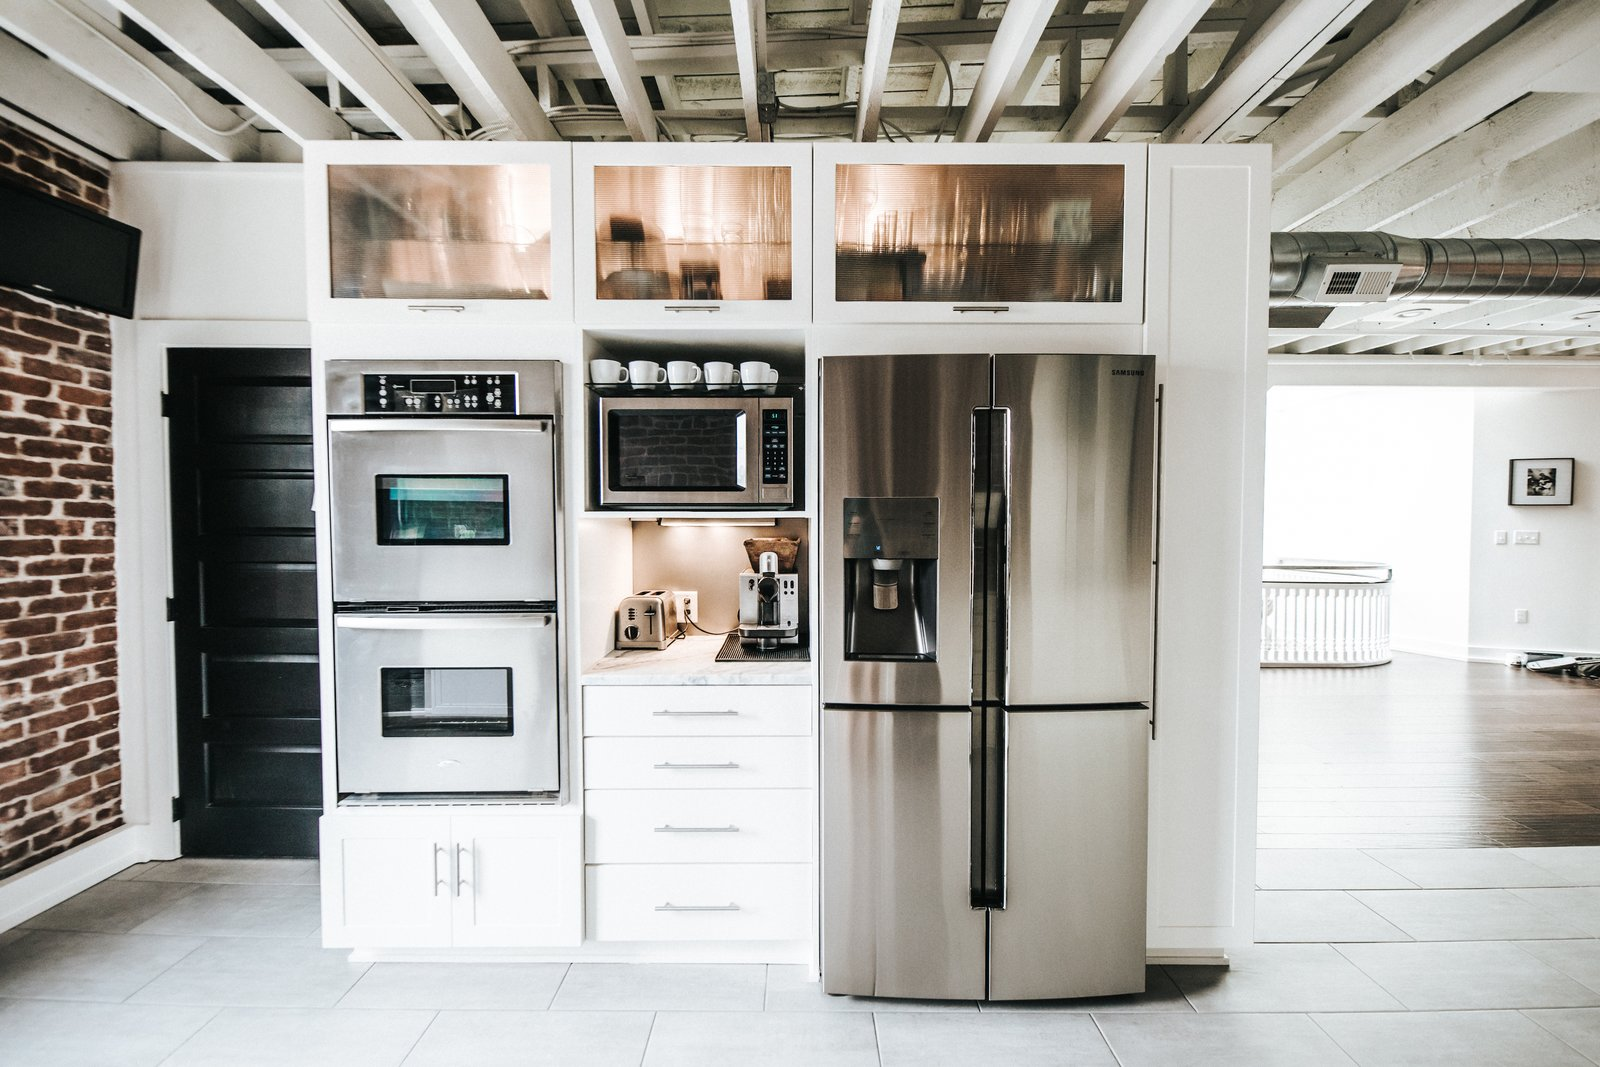 Kitchen, Wood Cabinet, Microwave, White Cabinet, Refrigerator, Wall Oven, Terrazzo Floor, and Marble Counter Kitchen Appliances  Frindle